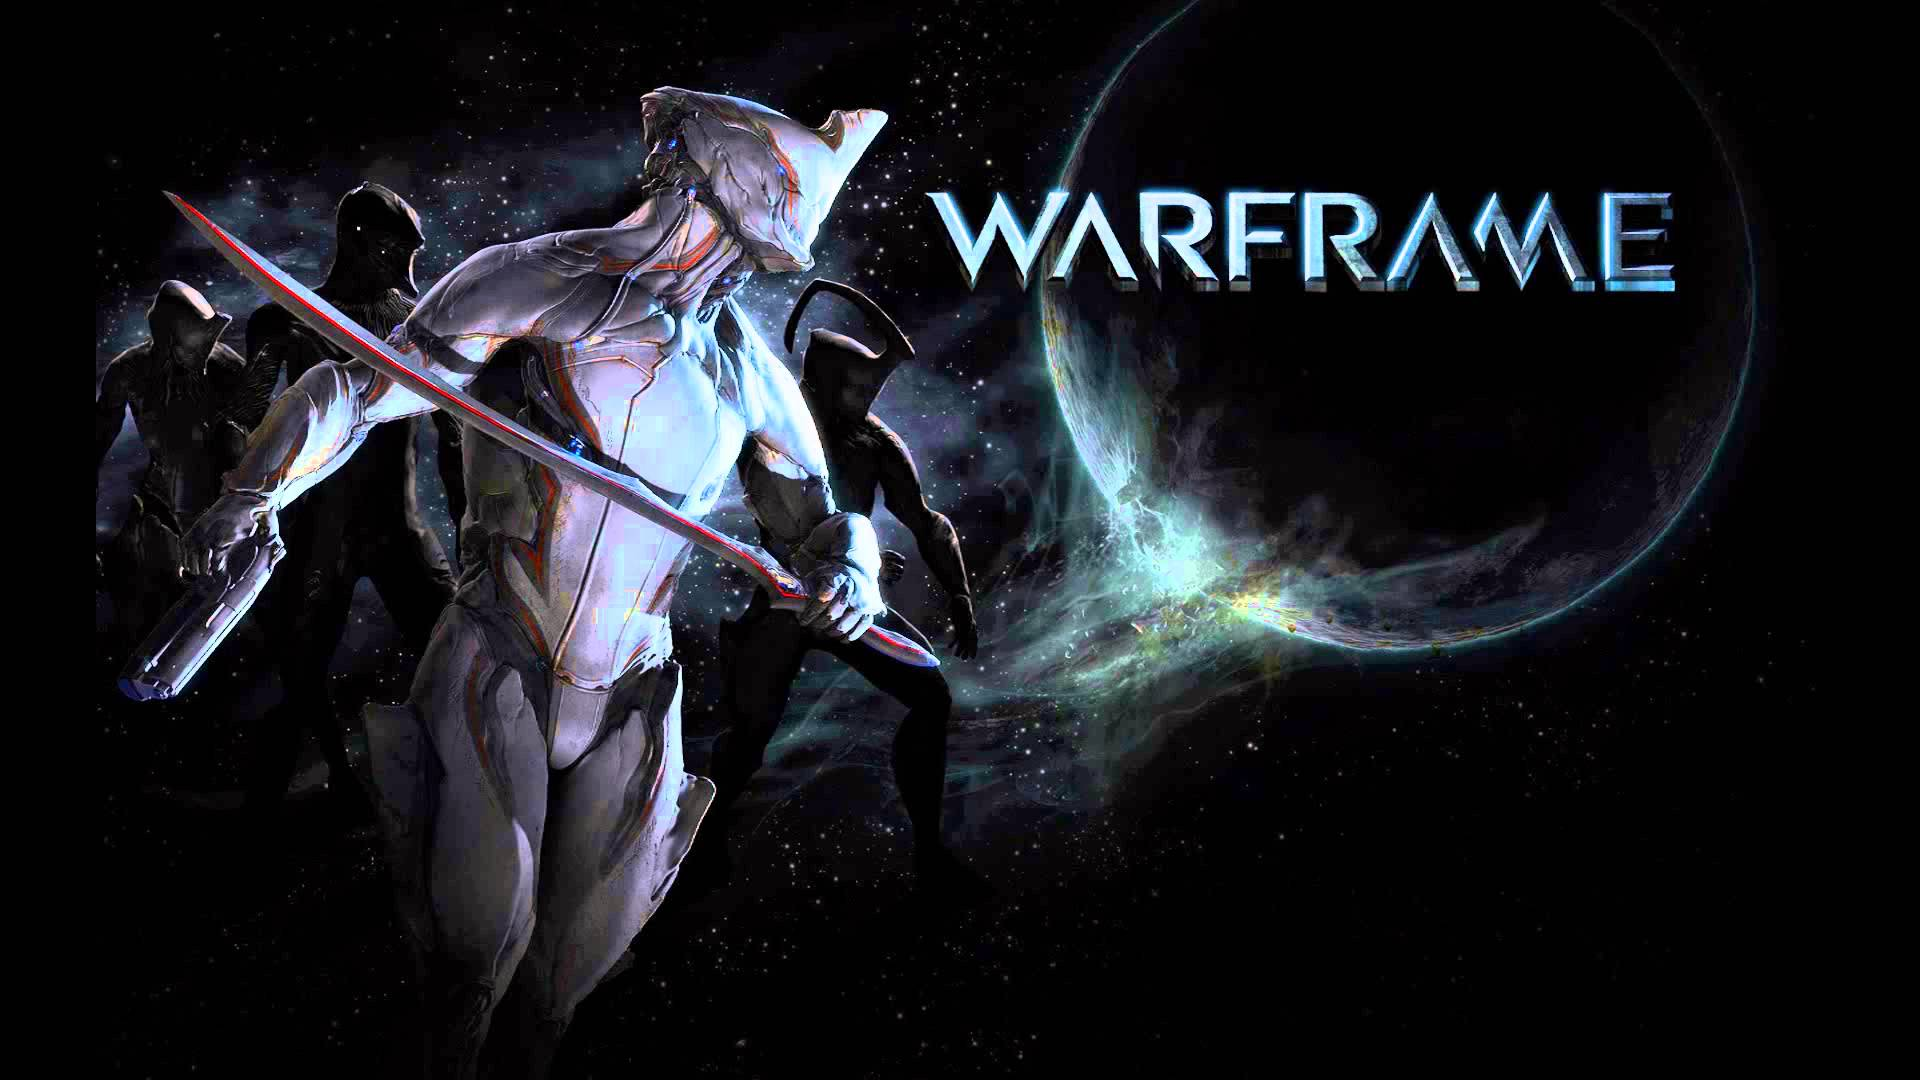 Warframe Acquired By Perfect World (Well...Kind of) ÃÃâÃà MMOBomb.com